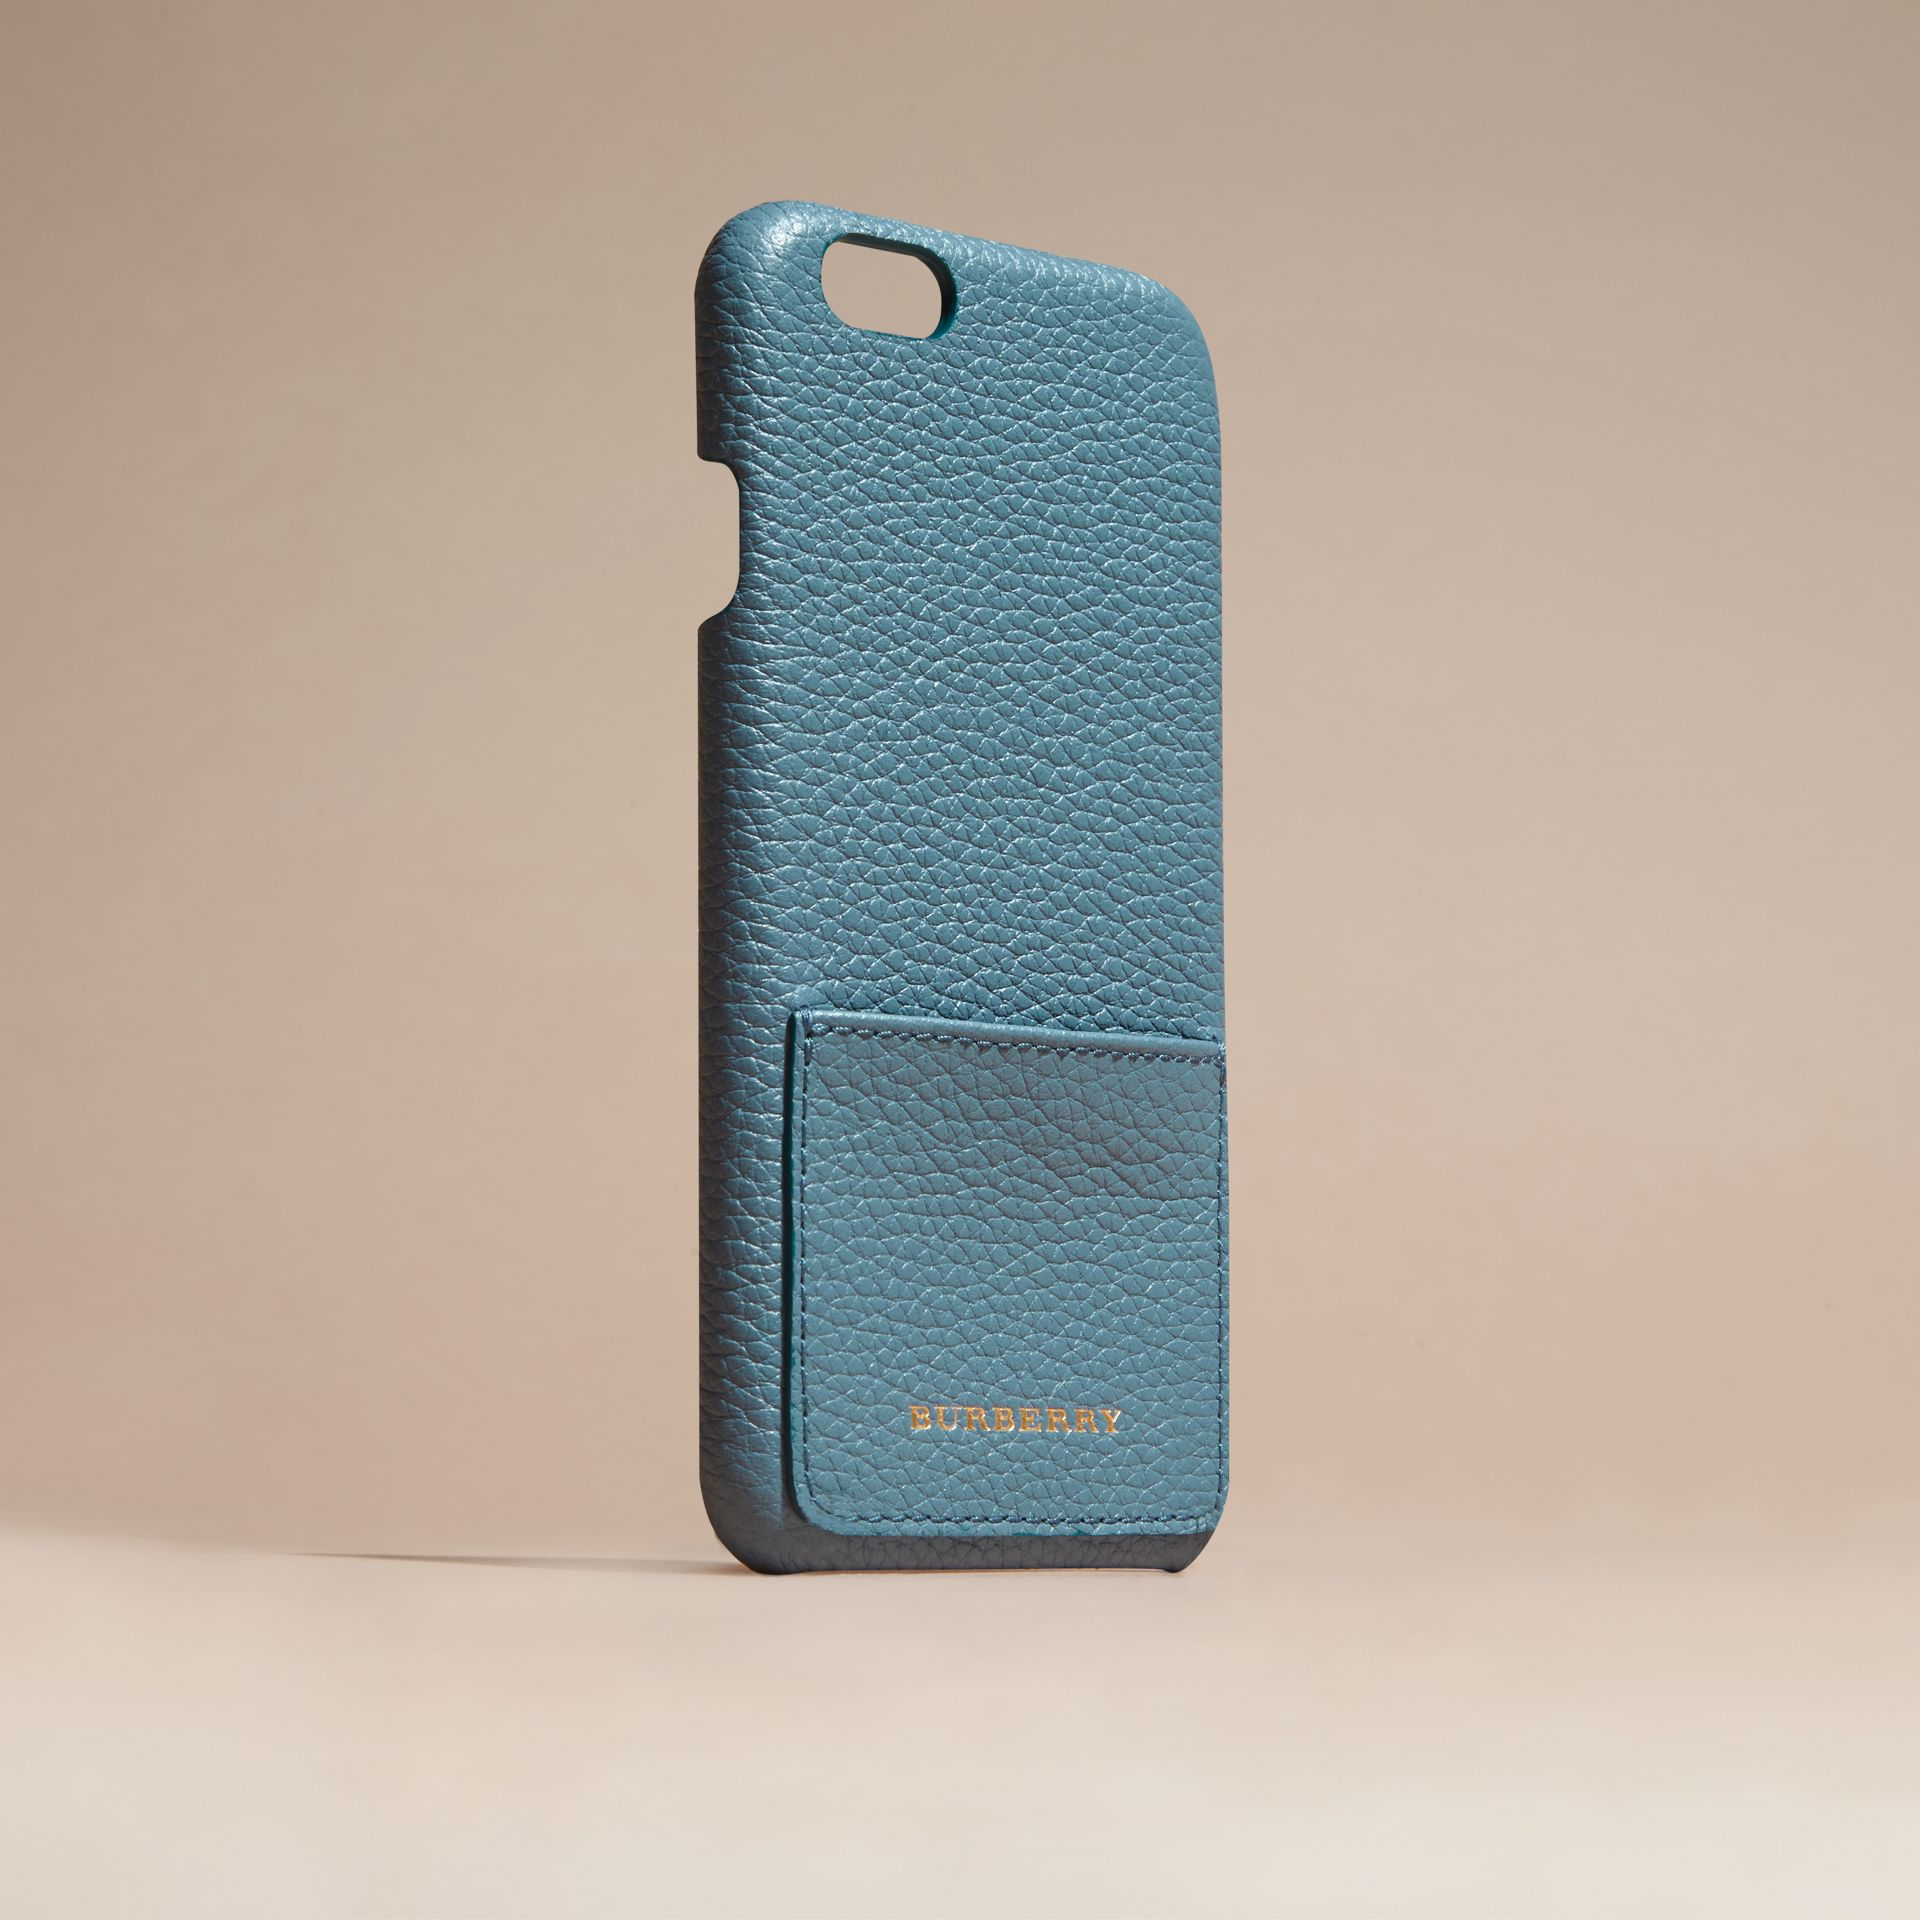 Dusty teal Grainy Leather iPhone 6 Case Dusty Teal - gallery image 3